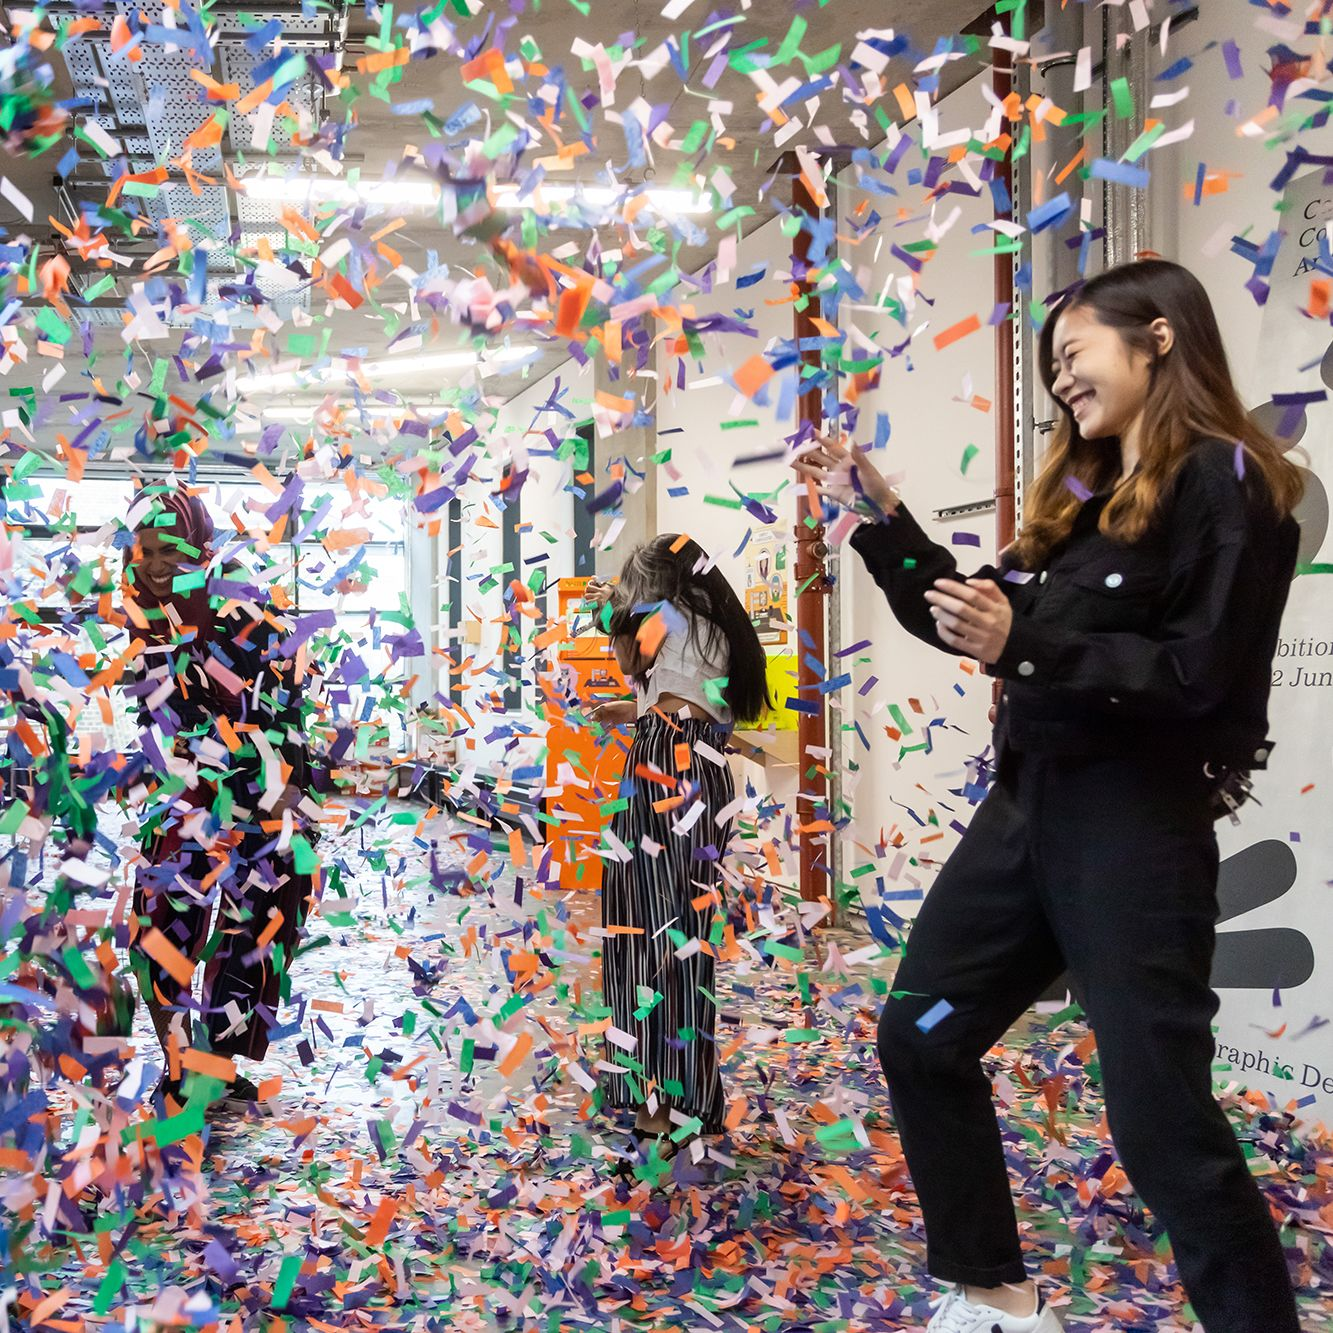 Four students throw green, orange, purple and white confetti at each other at the BA Graphic Design Summer Show at Camberwell